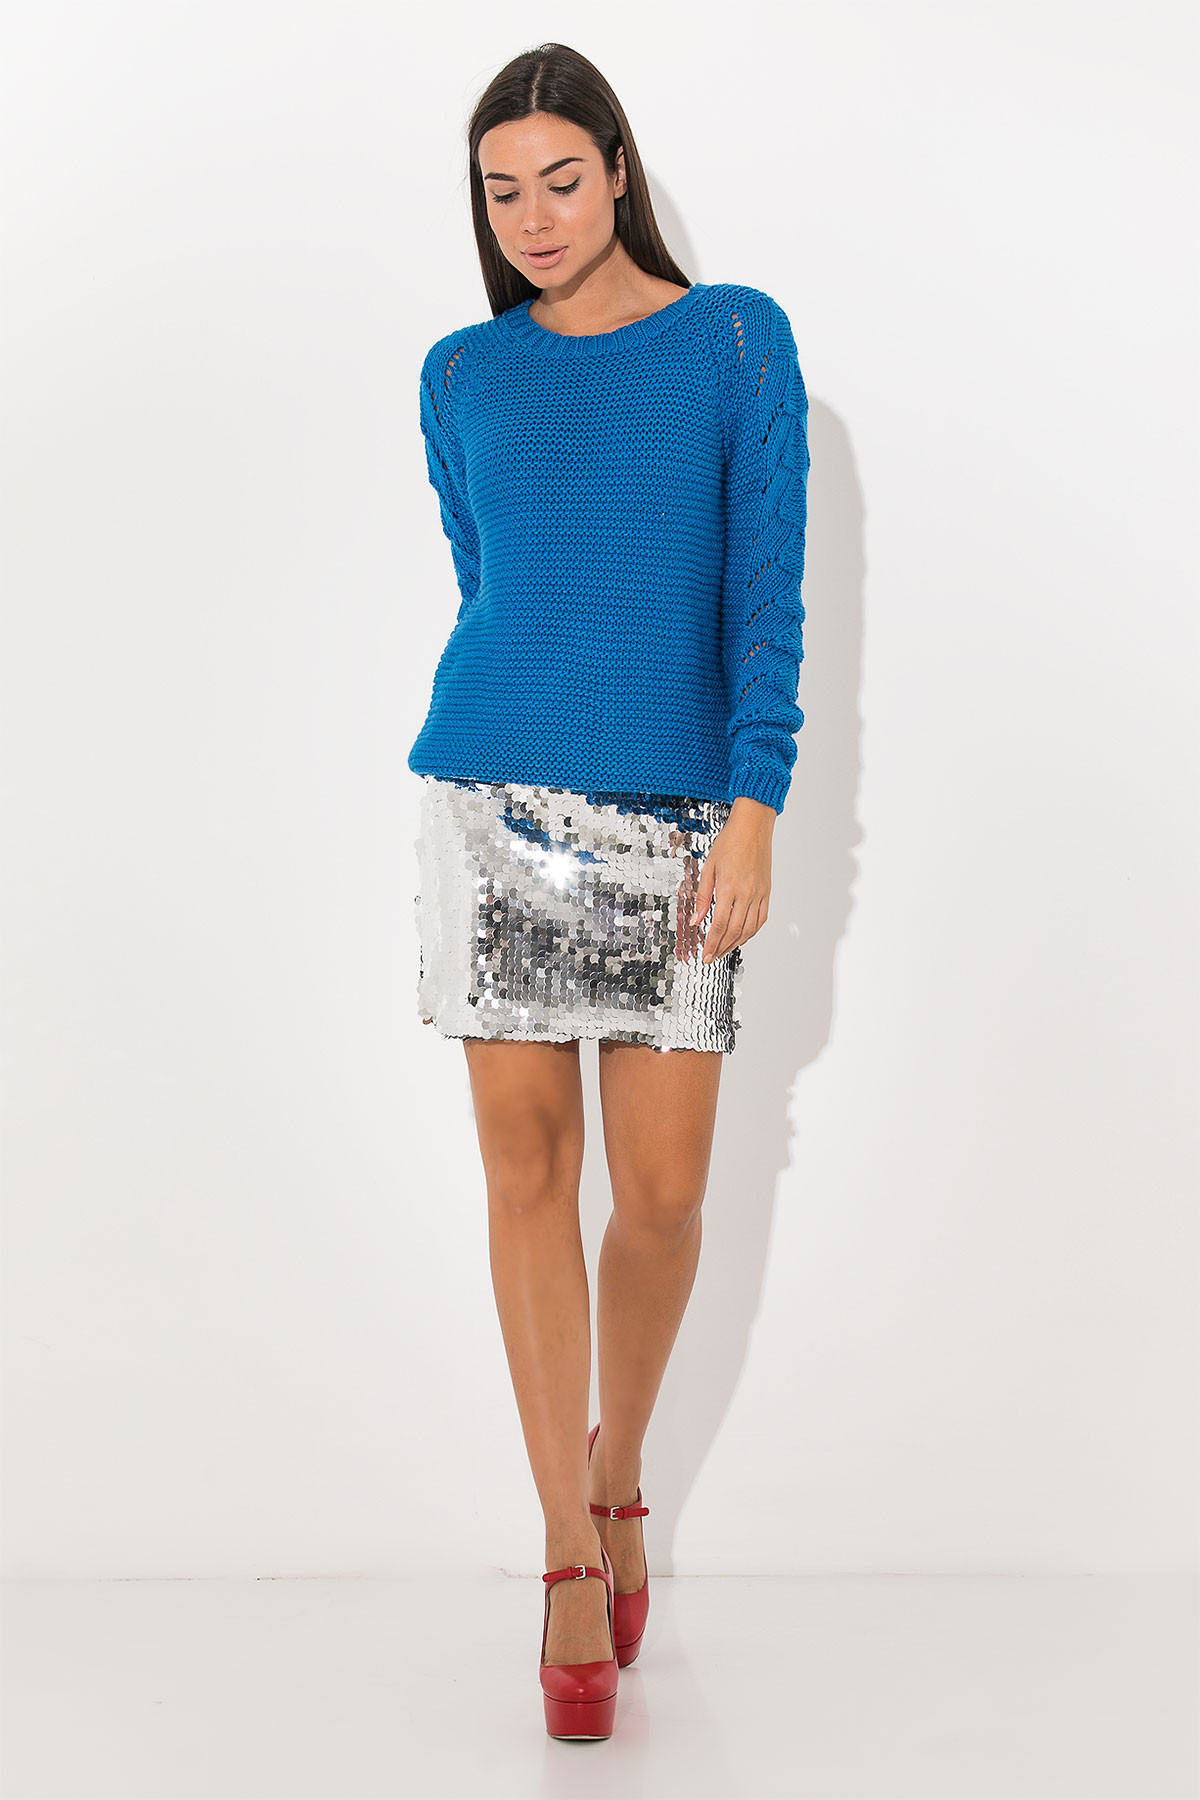 BLUE ROUND NECK KNITTED BLOUSE